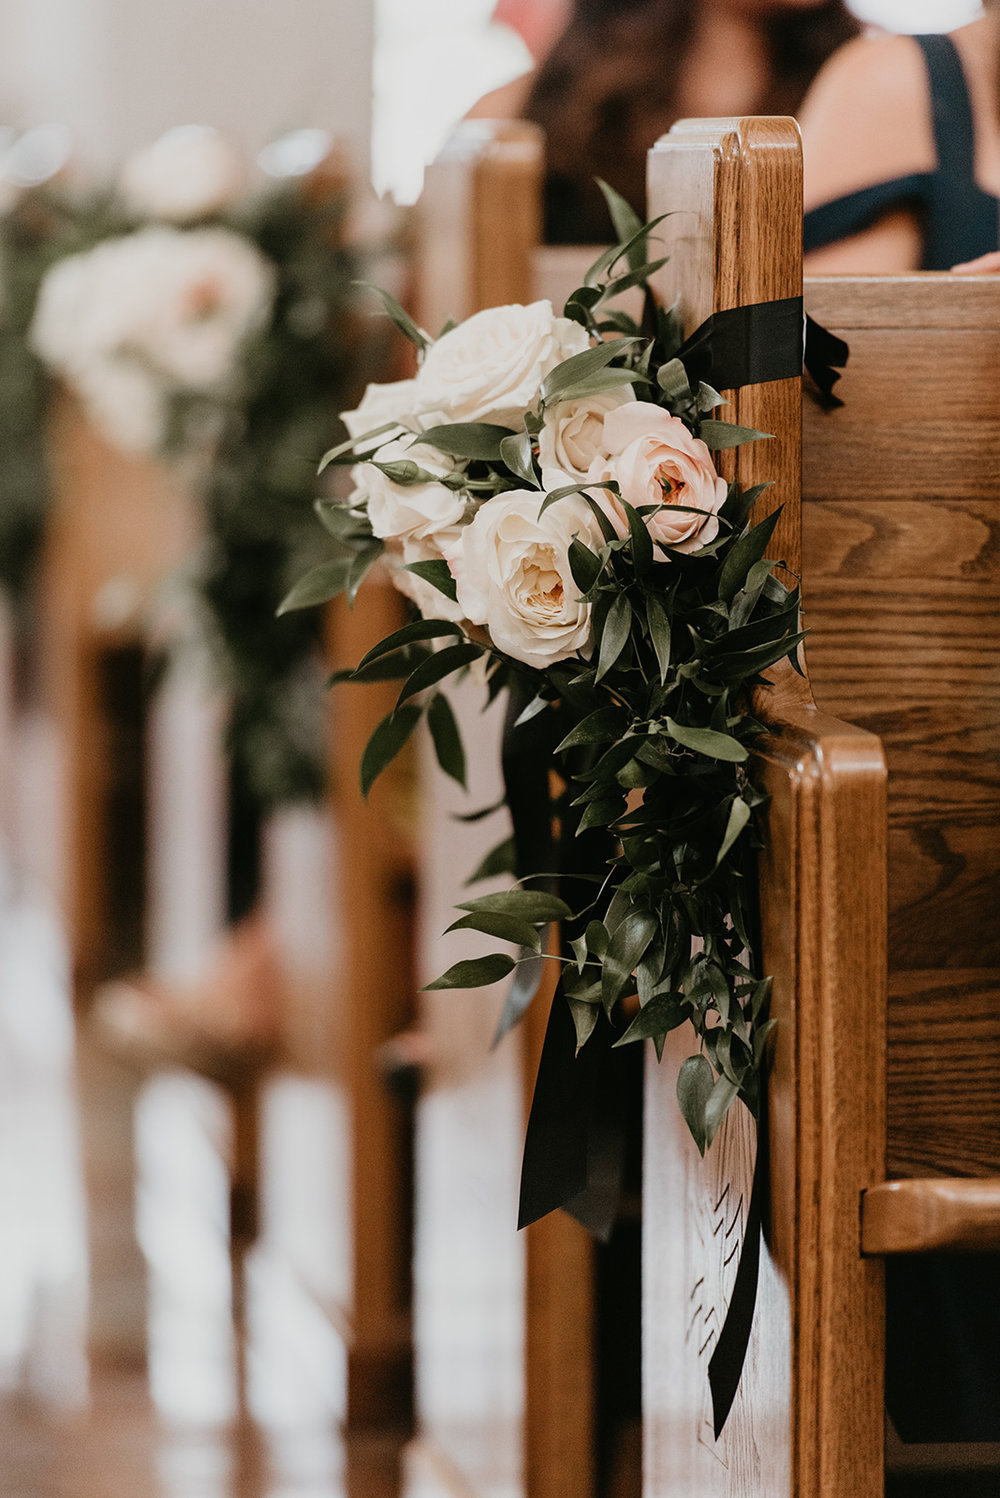 Fragoso Wedding in Las Vegas, NV - Church Flowers